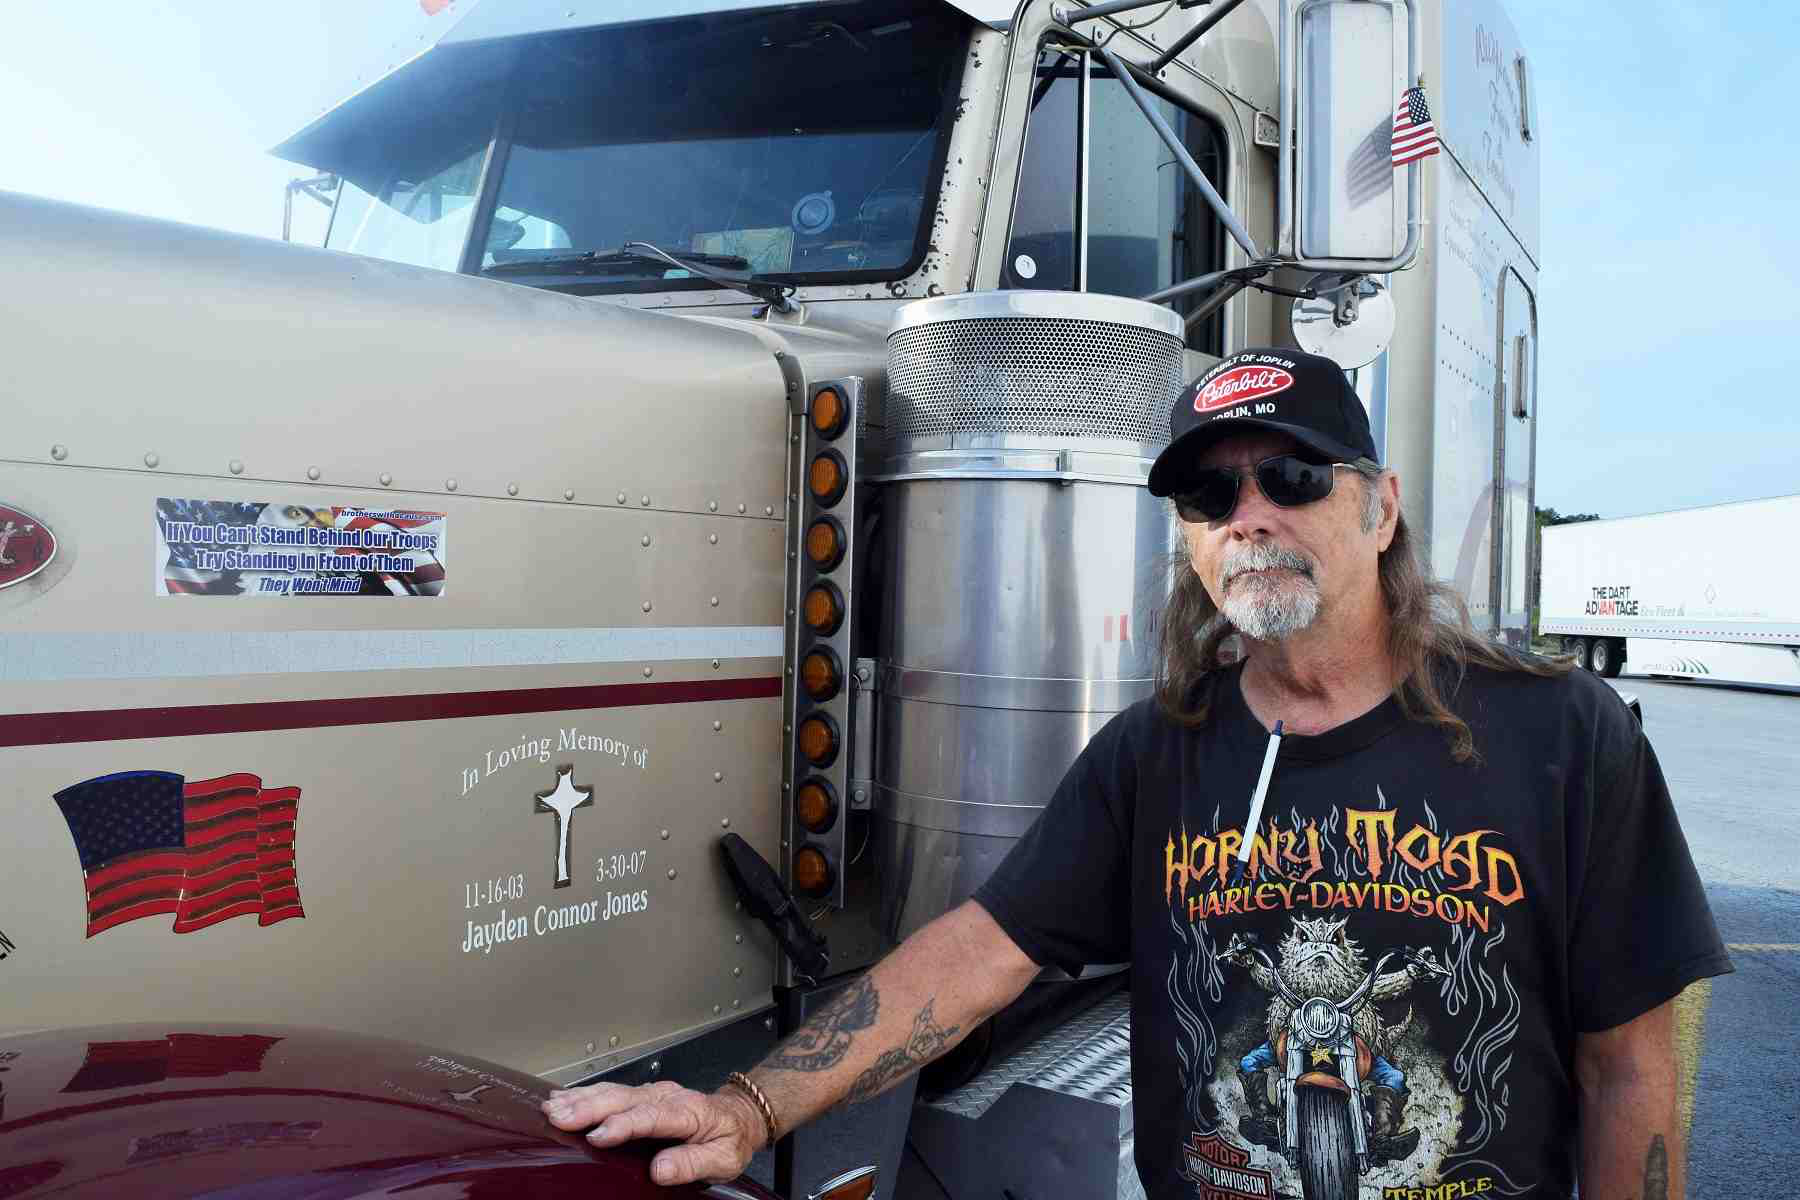 Owner-operator Charlie Flowers didn't serve in the military himself, but his 2000 Peterbilt 379 carries a patriotic theme and, among other members of the family, his daughter was in the Army.